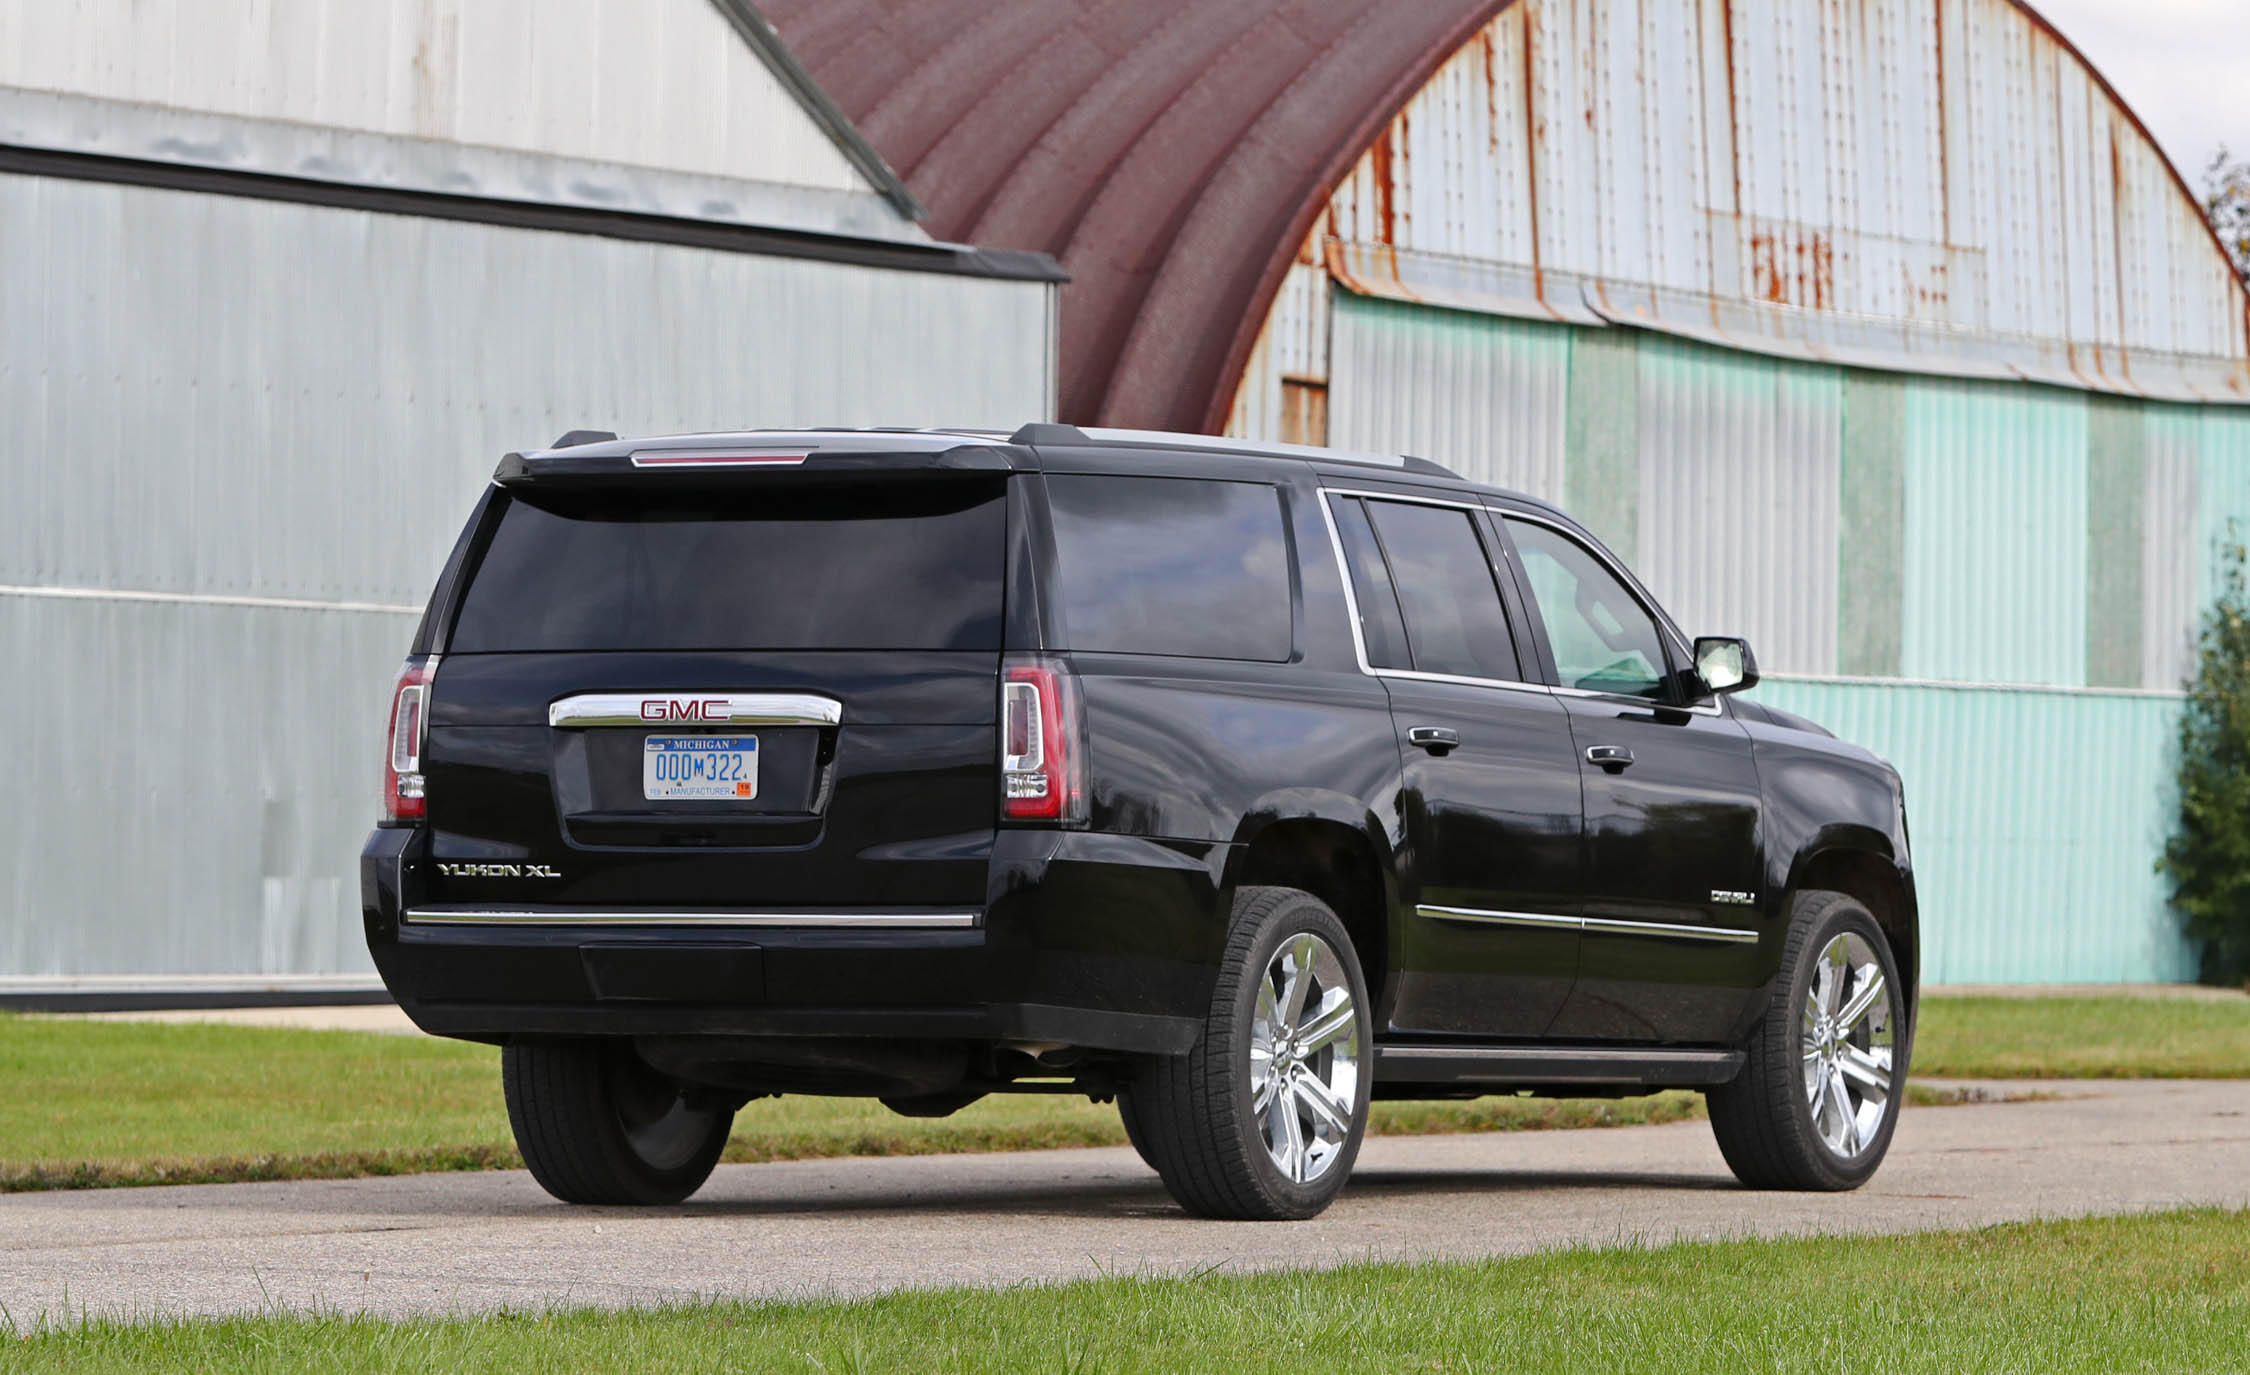 2017 Gmc Yukon Xl Denali Exterior Rear (Photo 5 of 26)